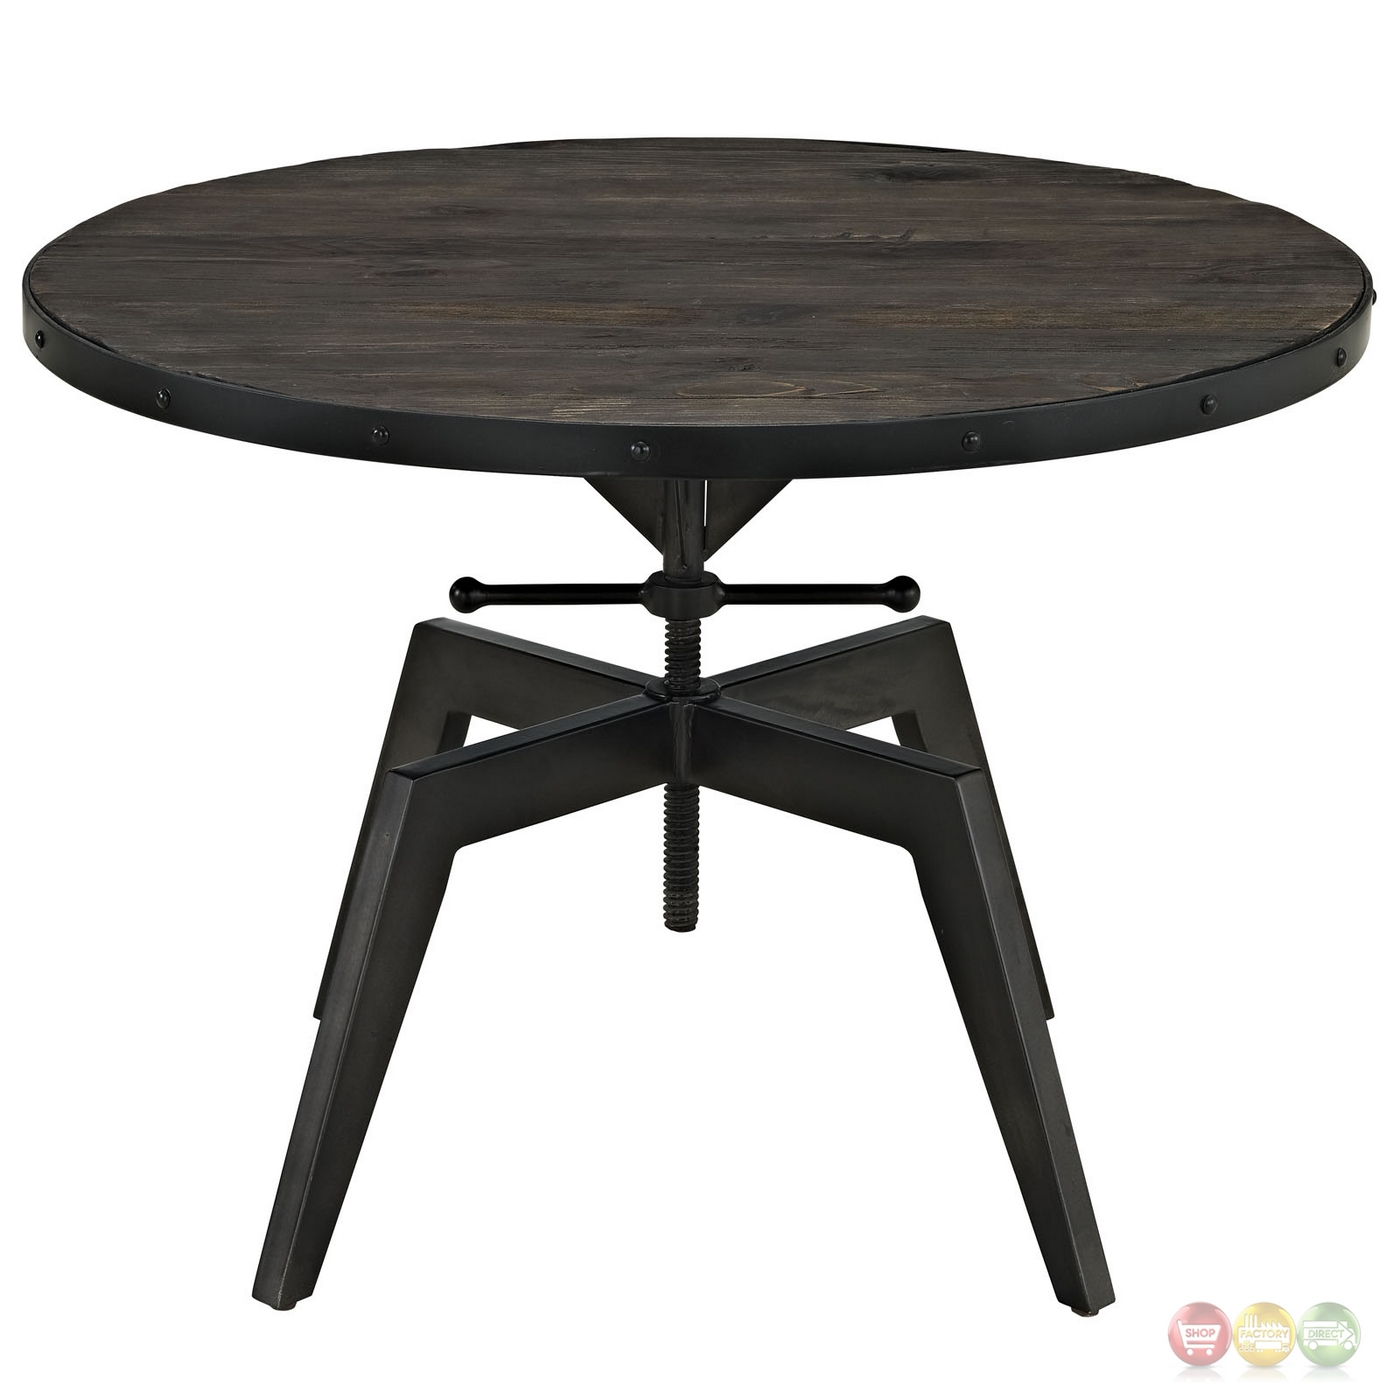 Round Wood And Embossed Metal Kiran Coffee Table: Grasp Industrial Round Pine Wood Coffee Table With Metal